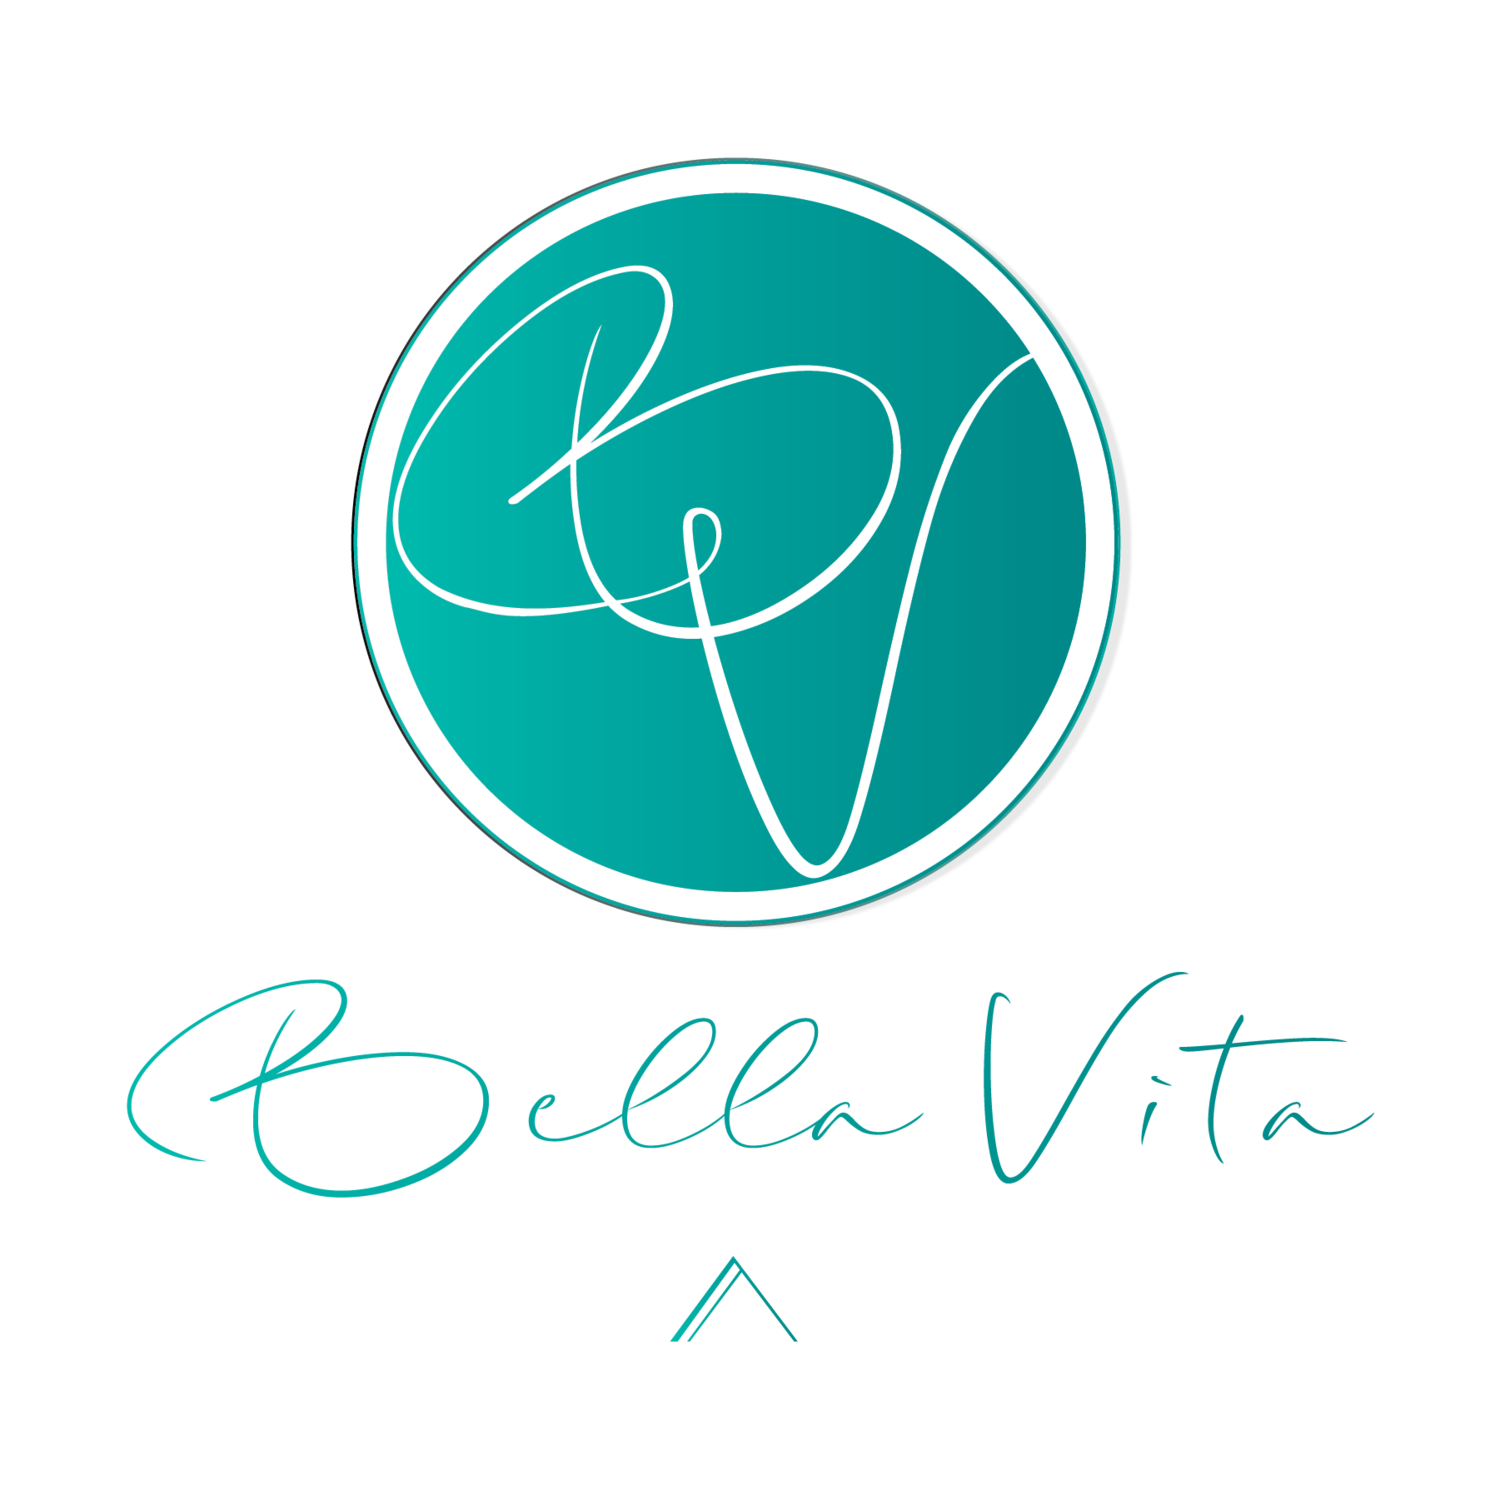 SALON BELLA VITA